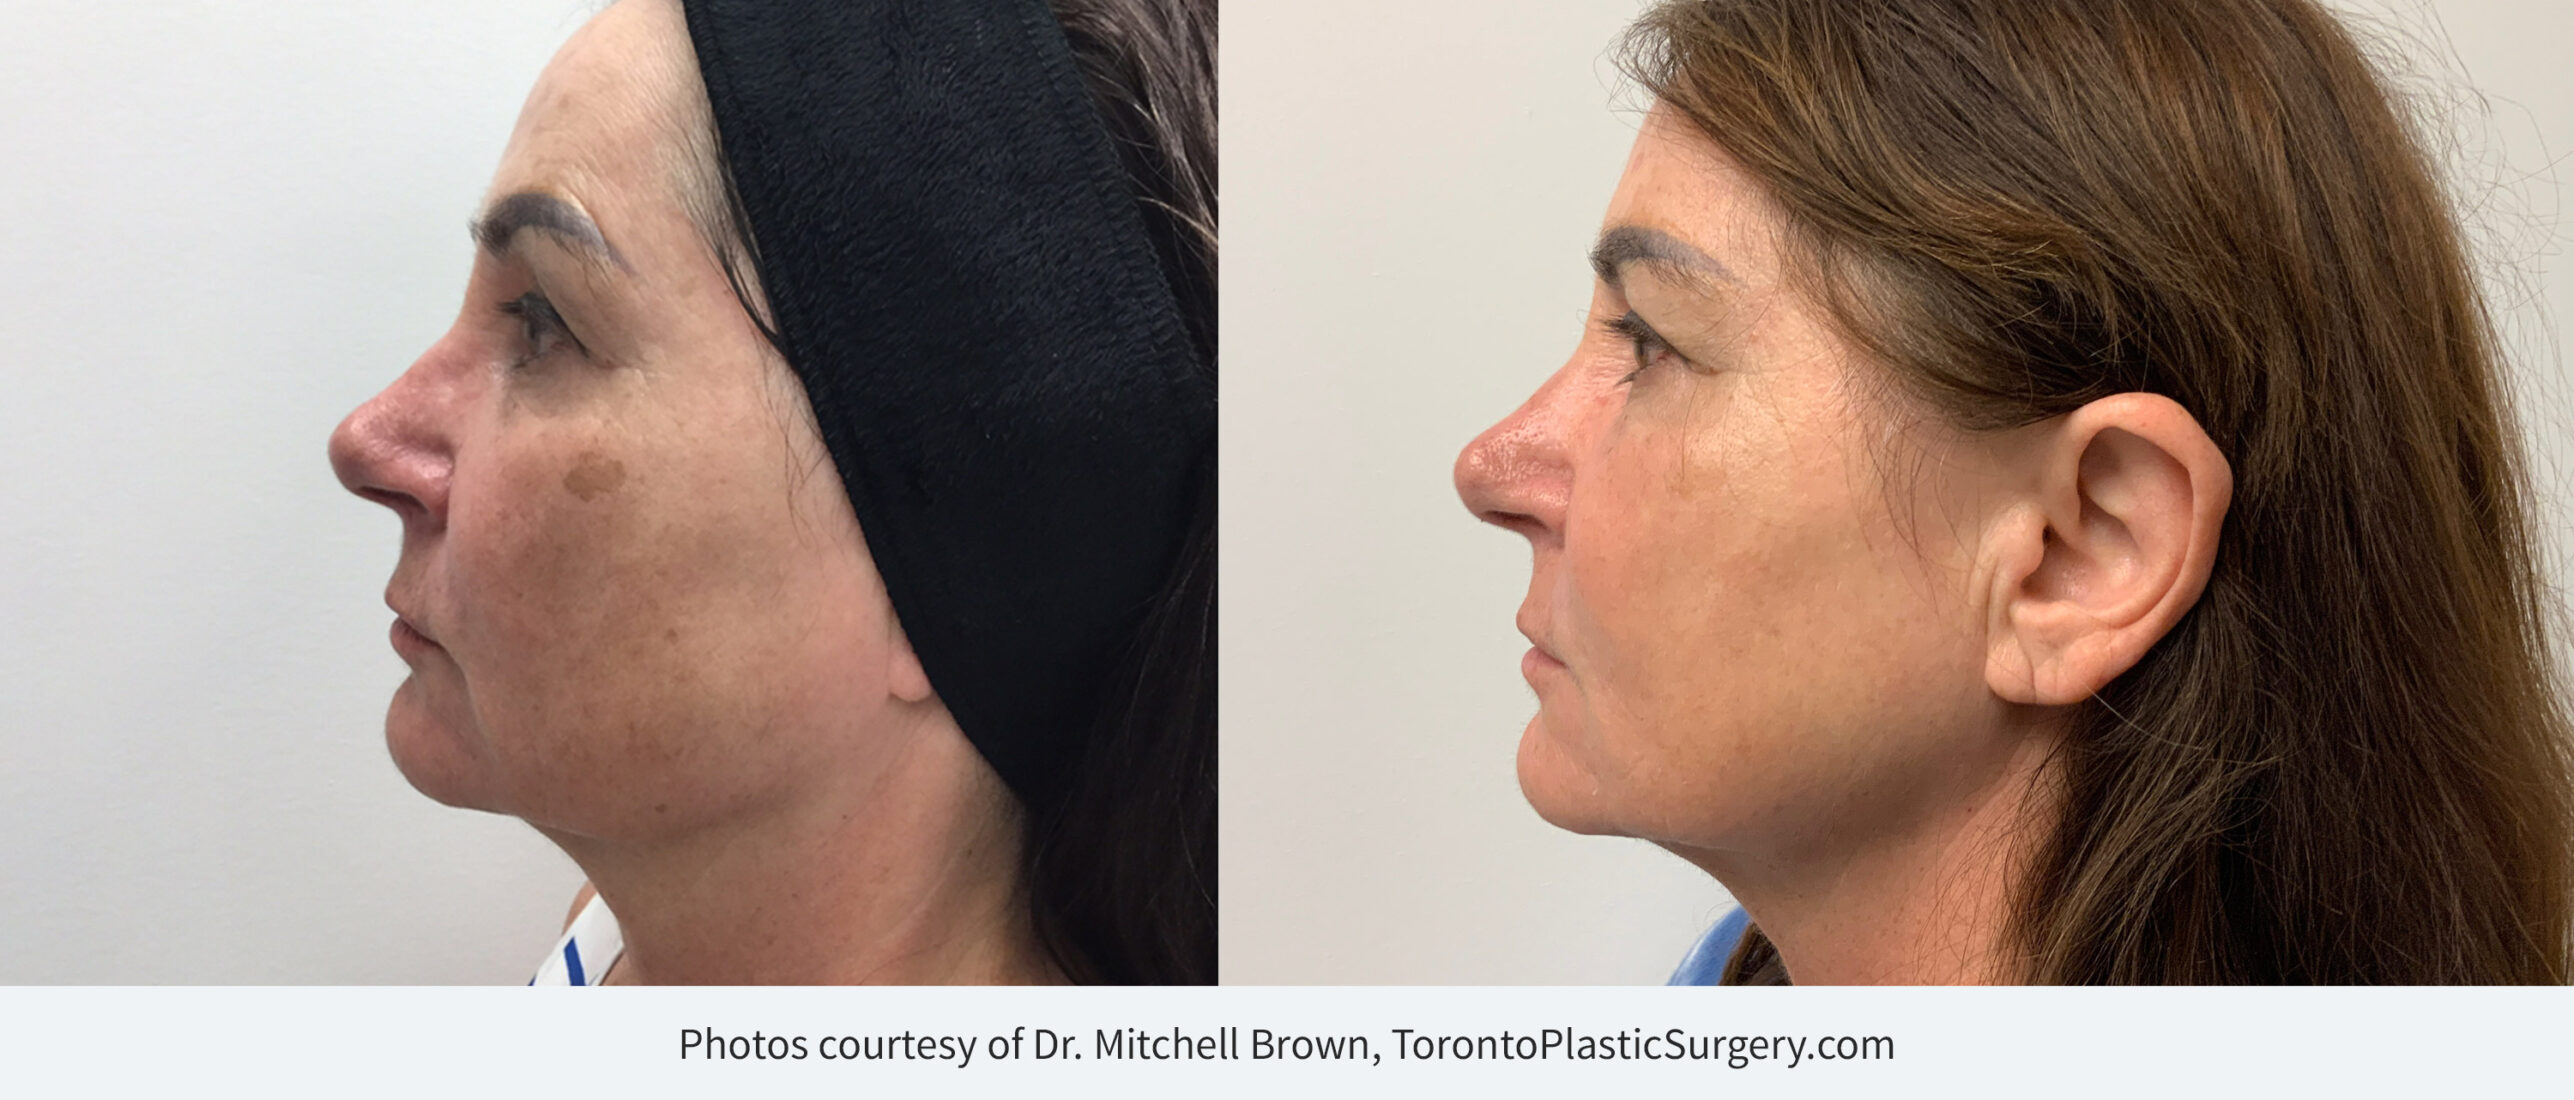 Before & After 3 sessions of BBL treatment